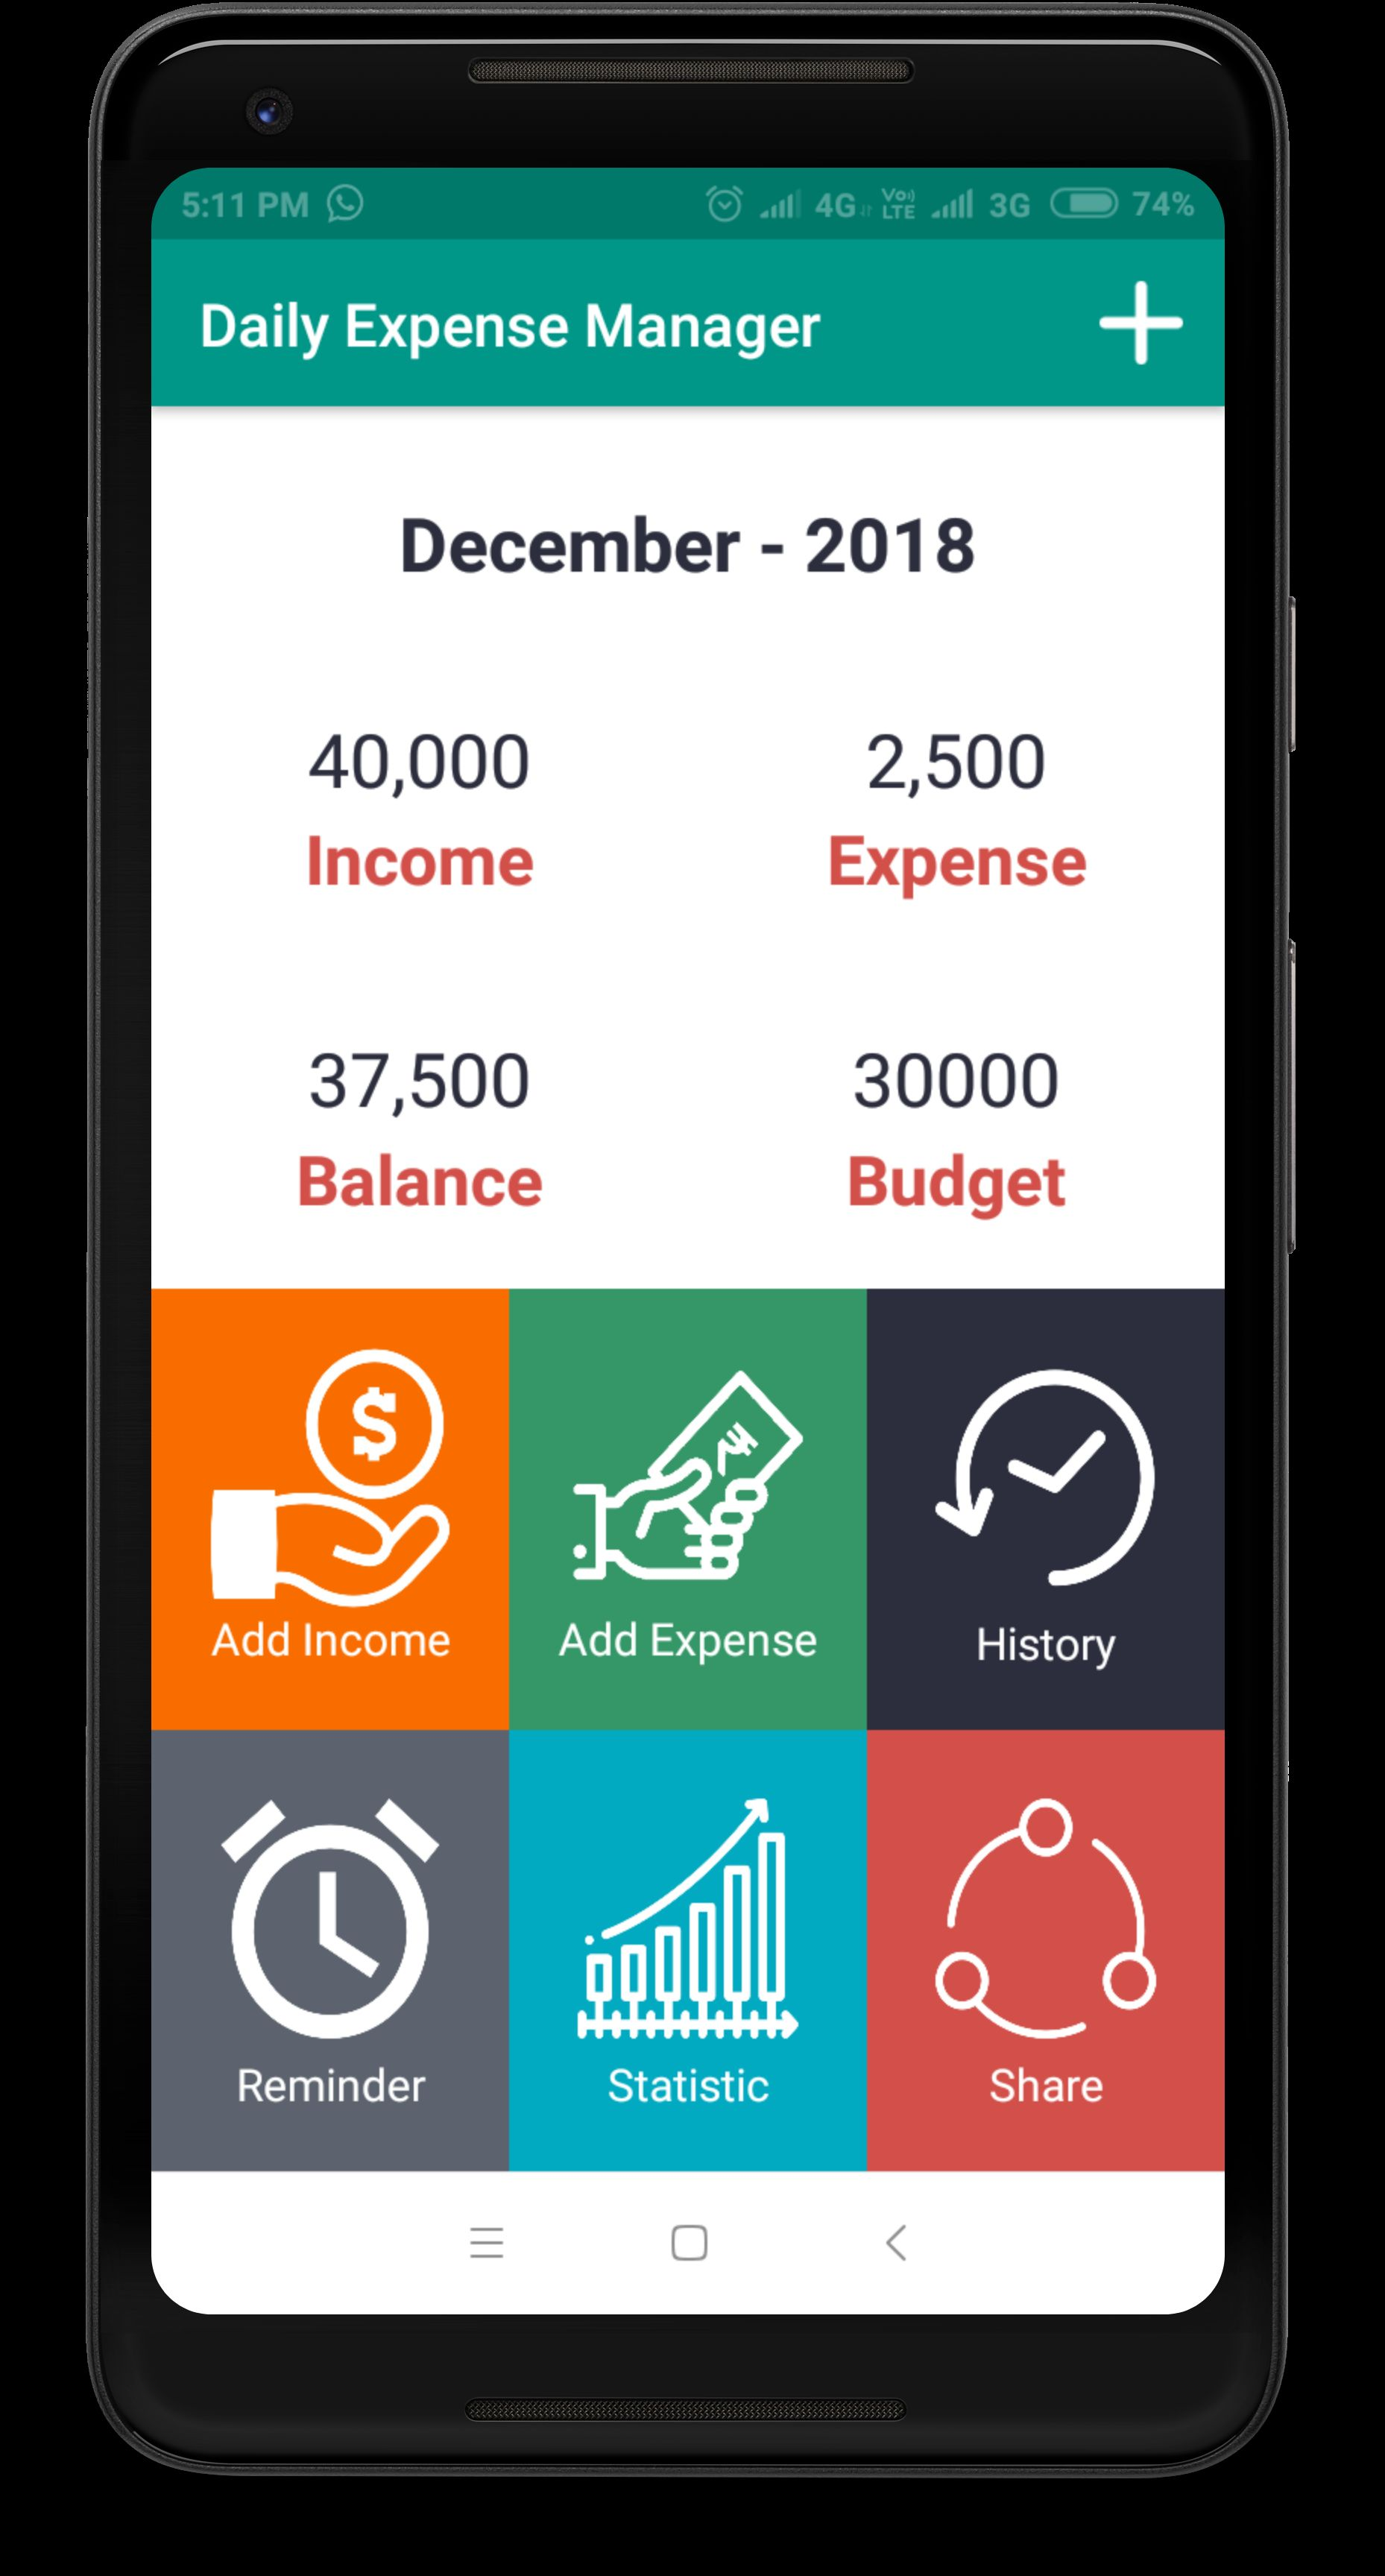 Daily Expense Manager - Android Source Code Screenshot 9